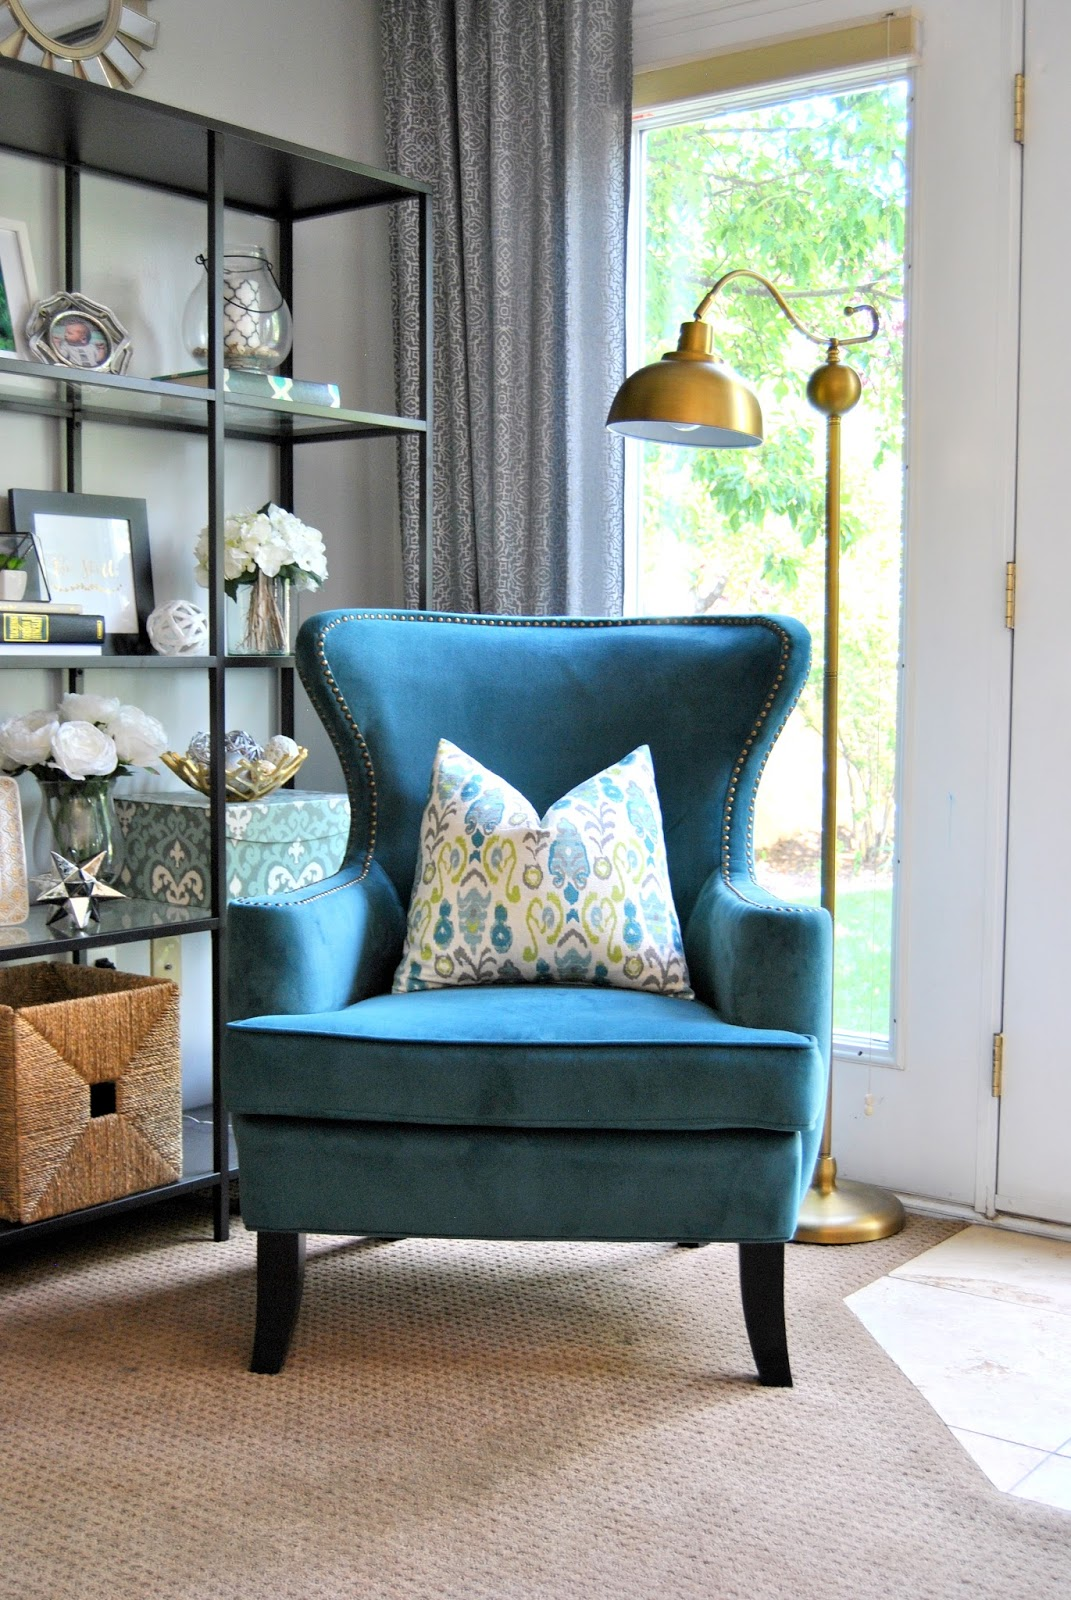 Studio 7 interior design july 2015 for Teal and brown chair